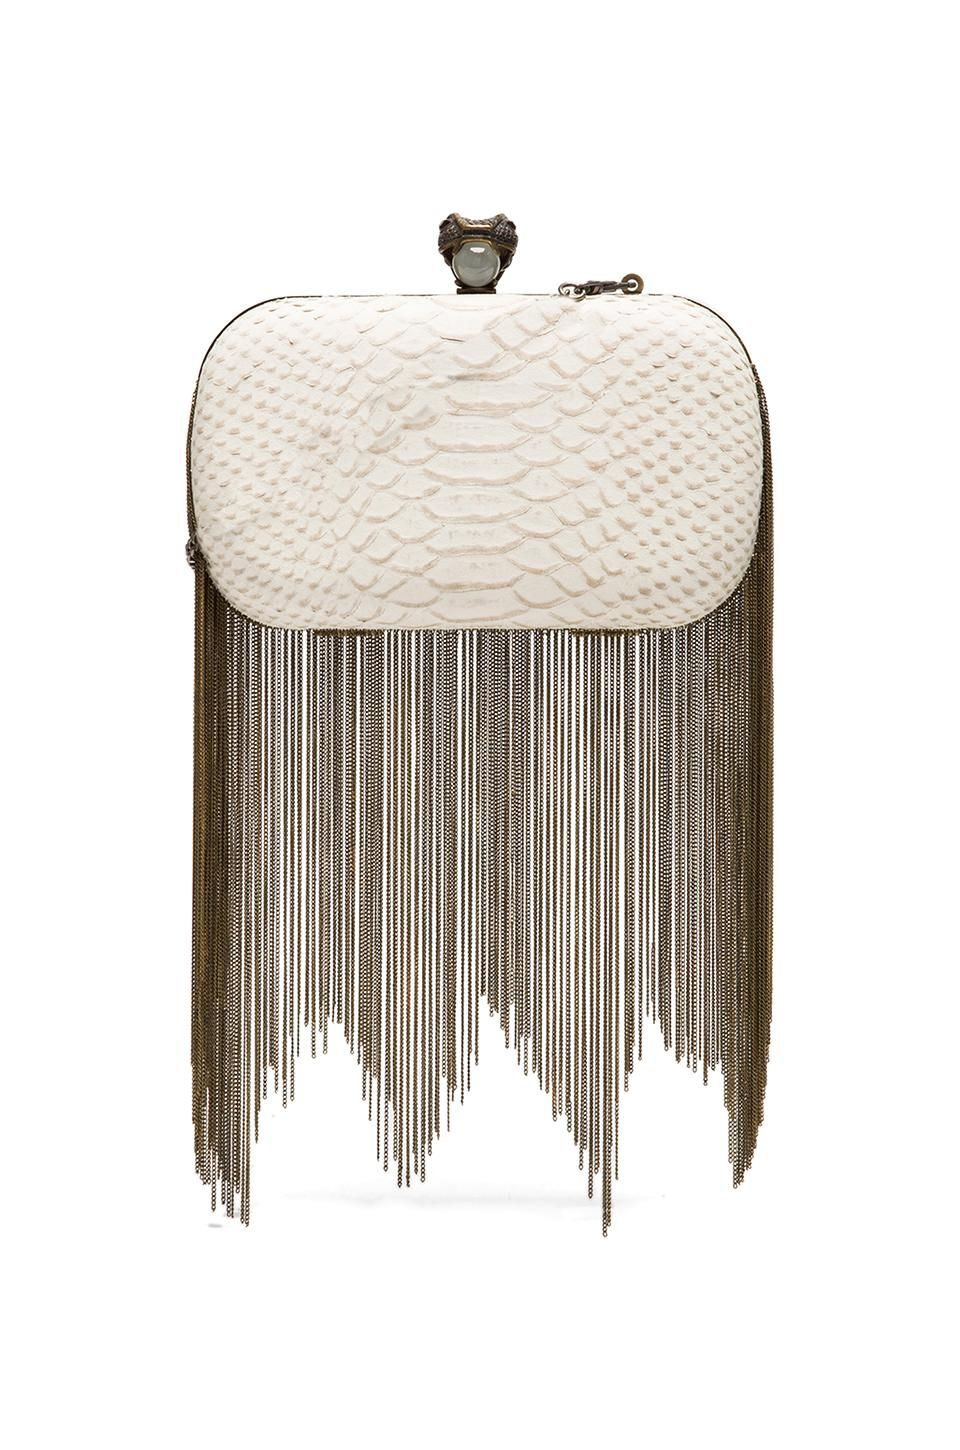 House of Harlow 1960 House of Harlow Jude Clutch in Ivory Snake